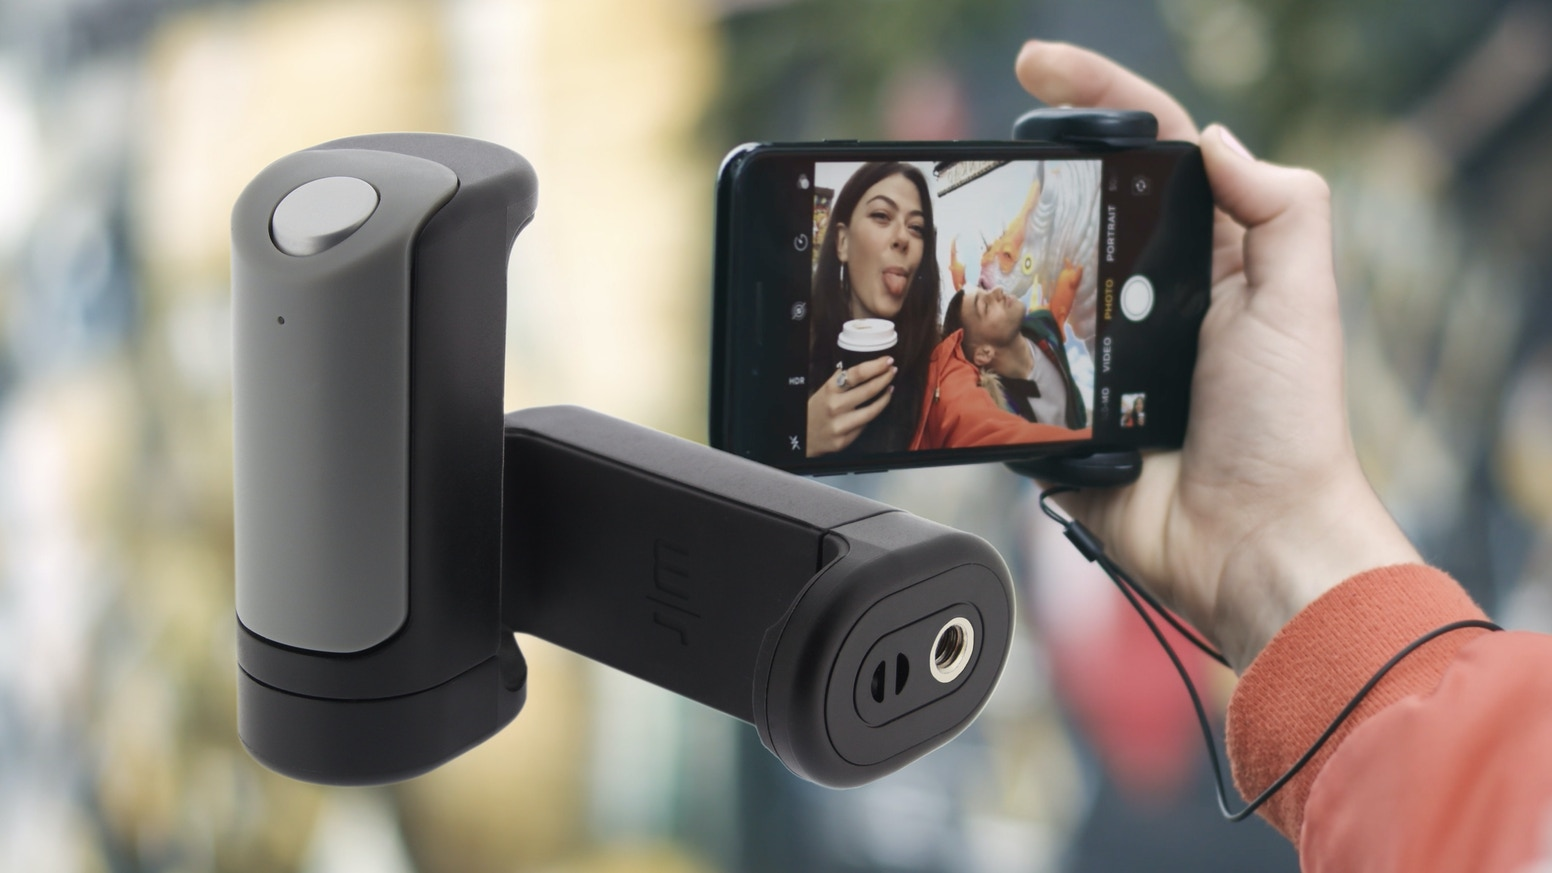 The ingenious grab-and-go camera control for your smartphone.